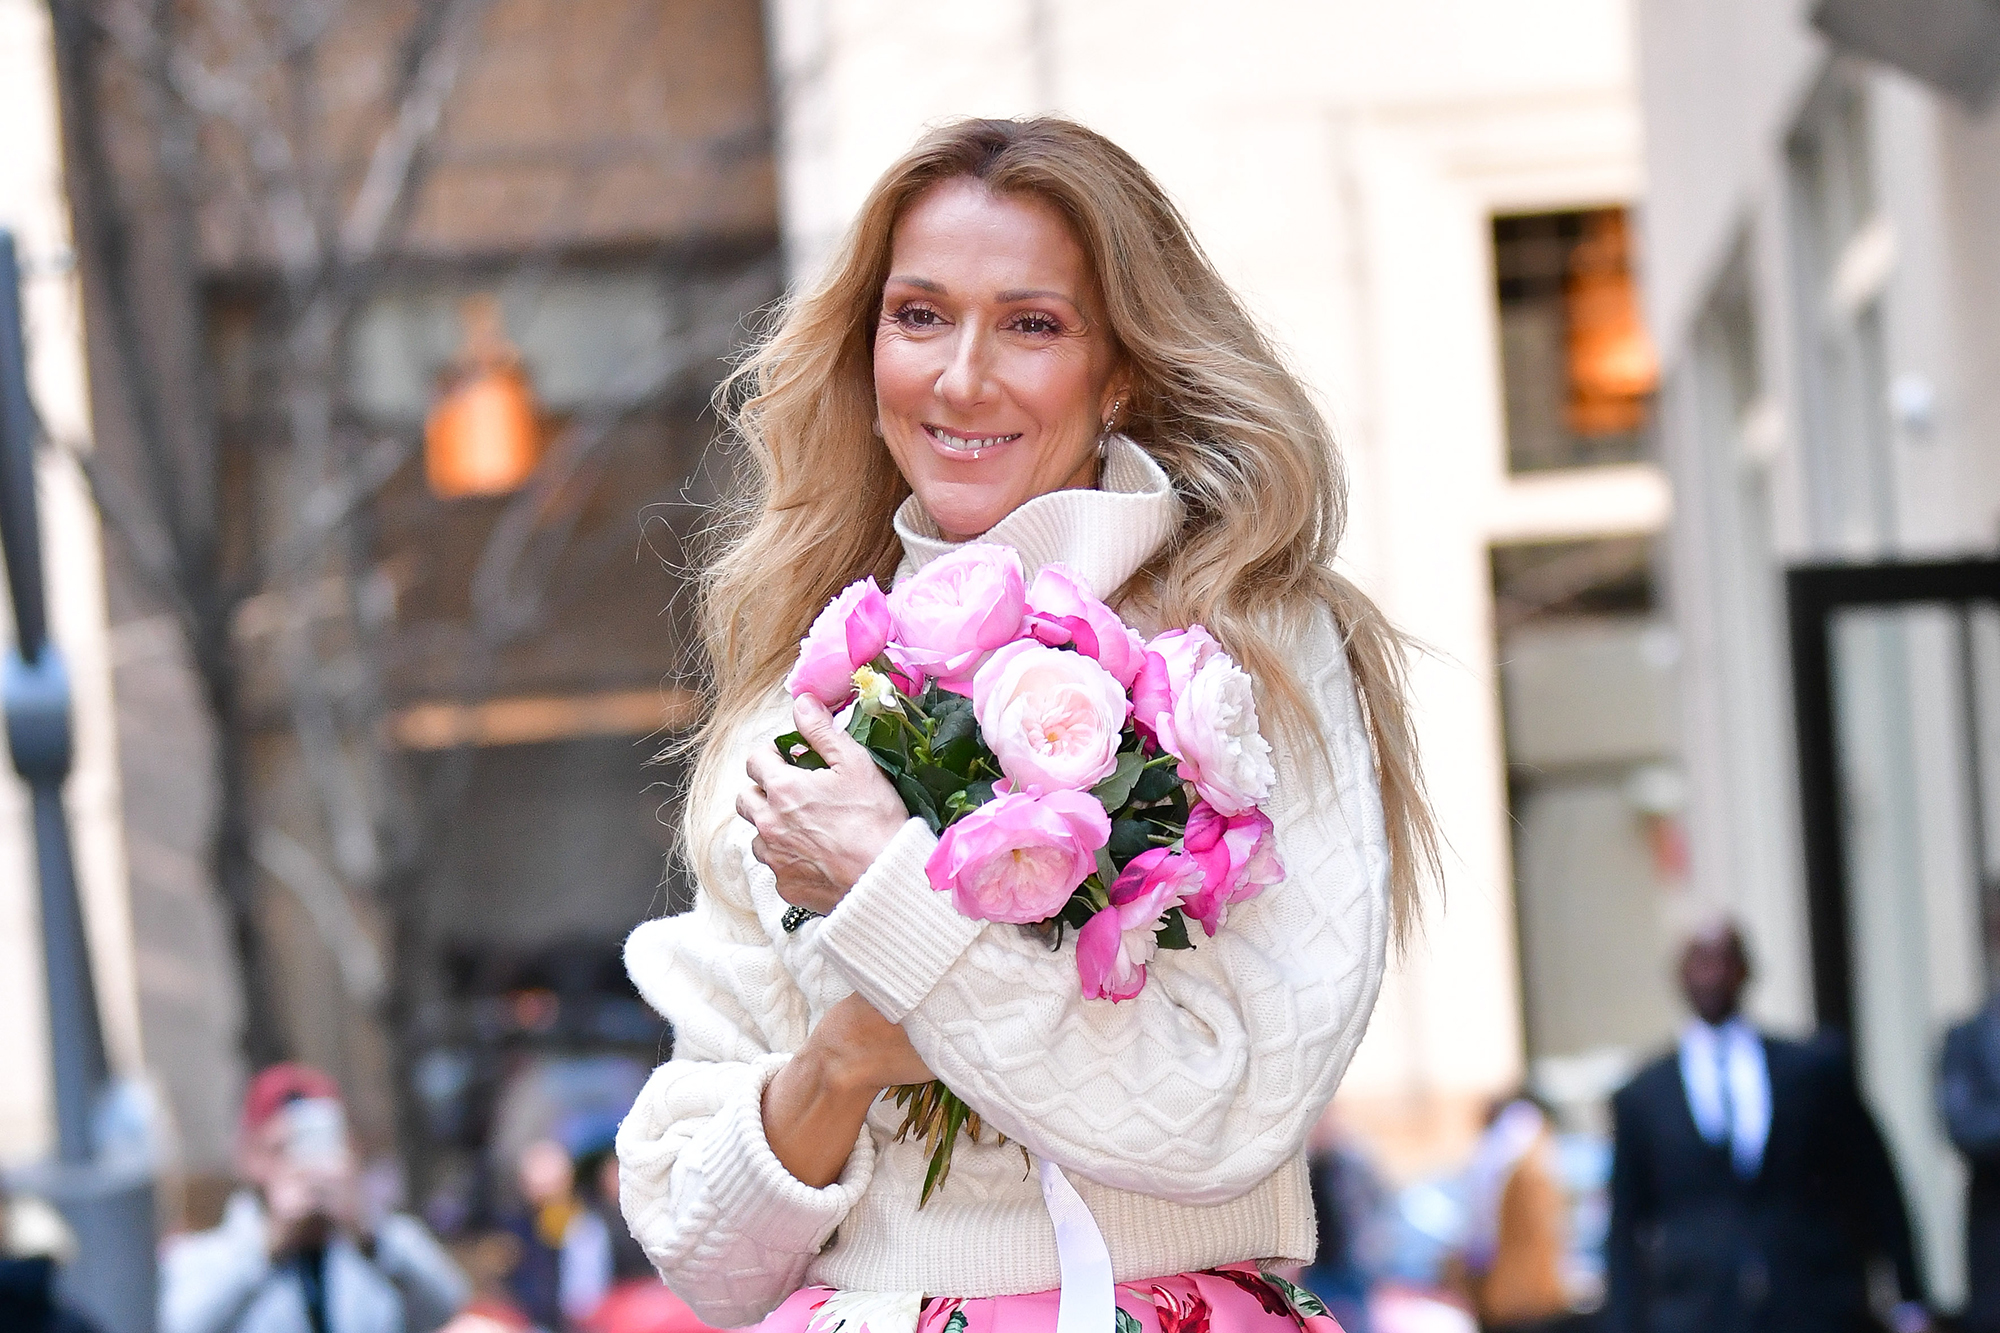 Celine Dion to star in a new romance film featuring her music